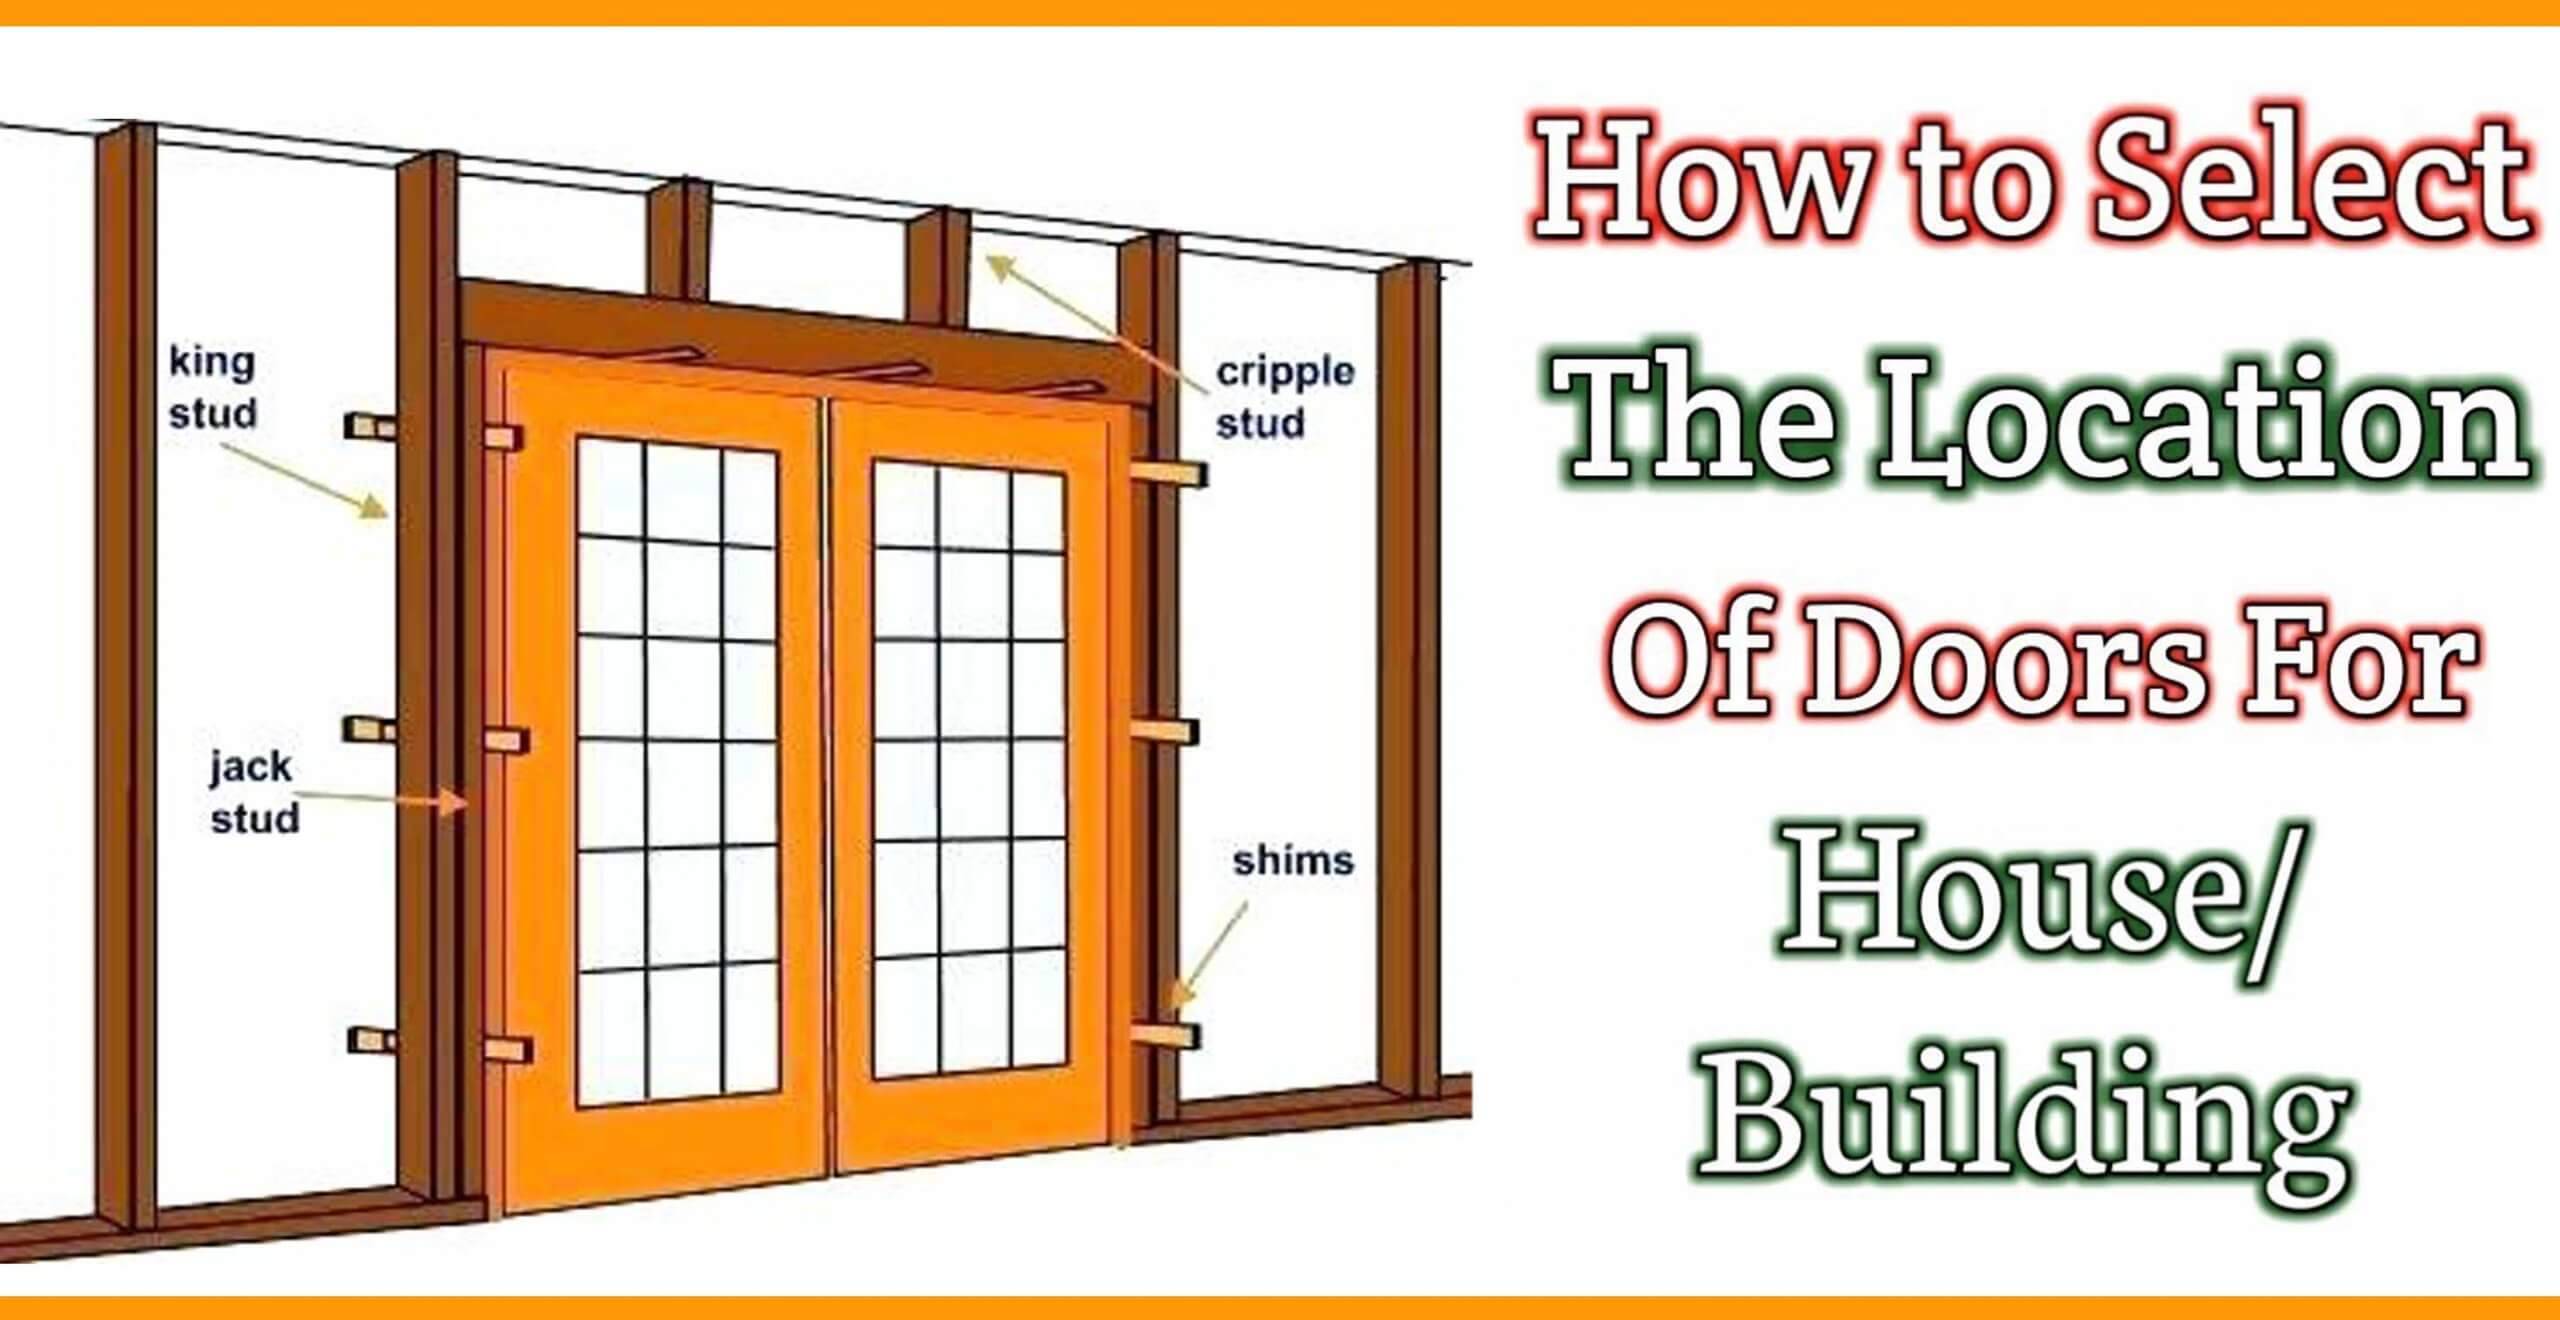 Select The Location Of Doors For House